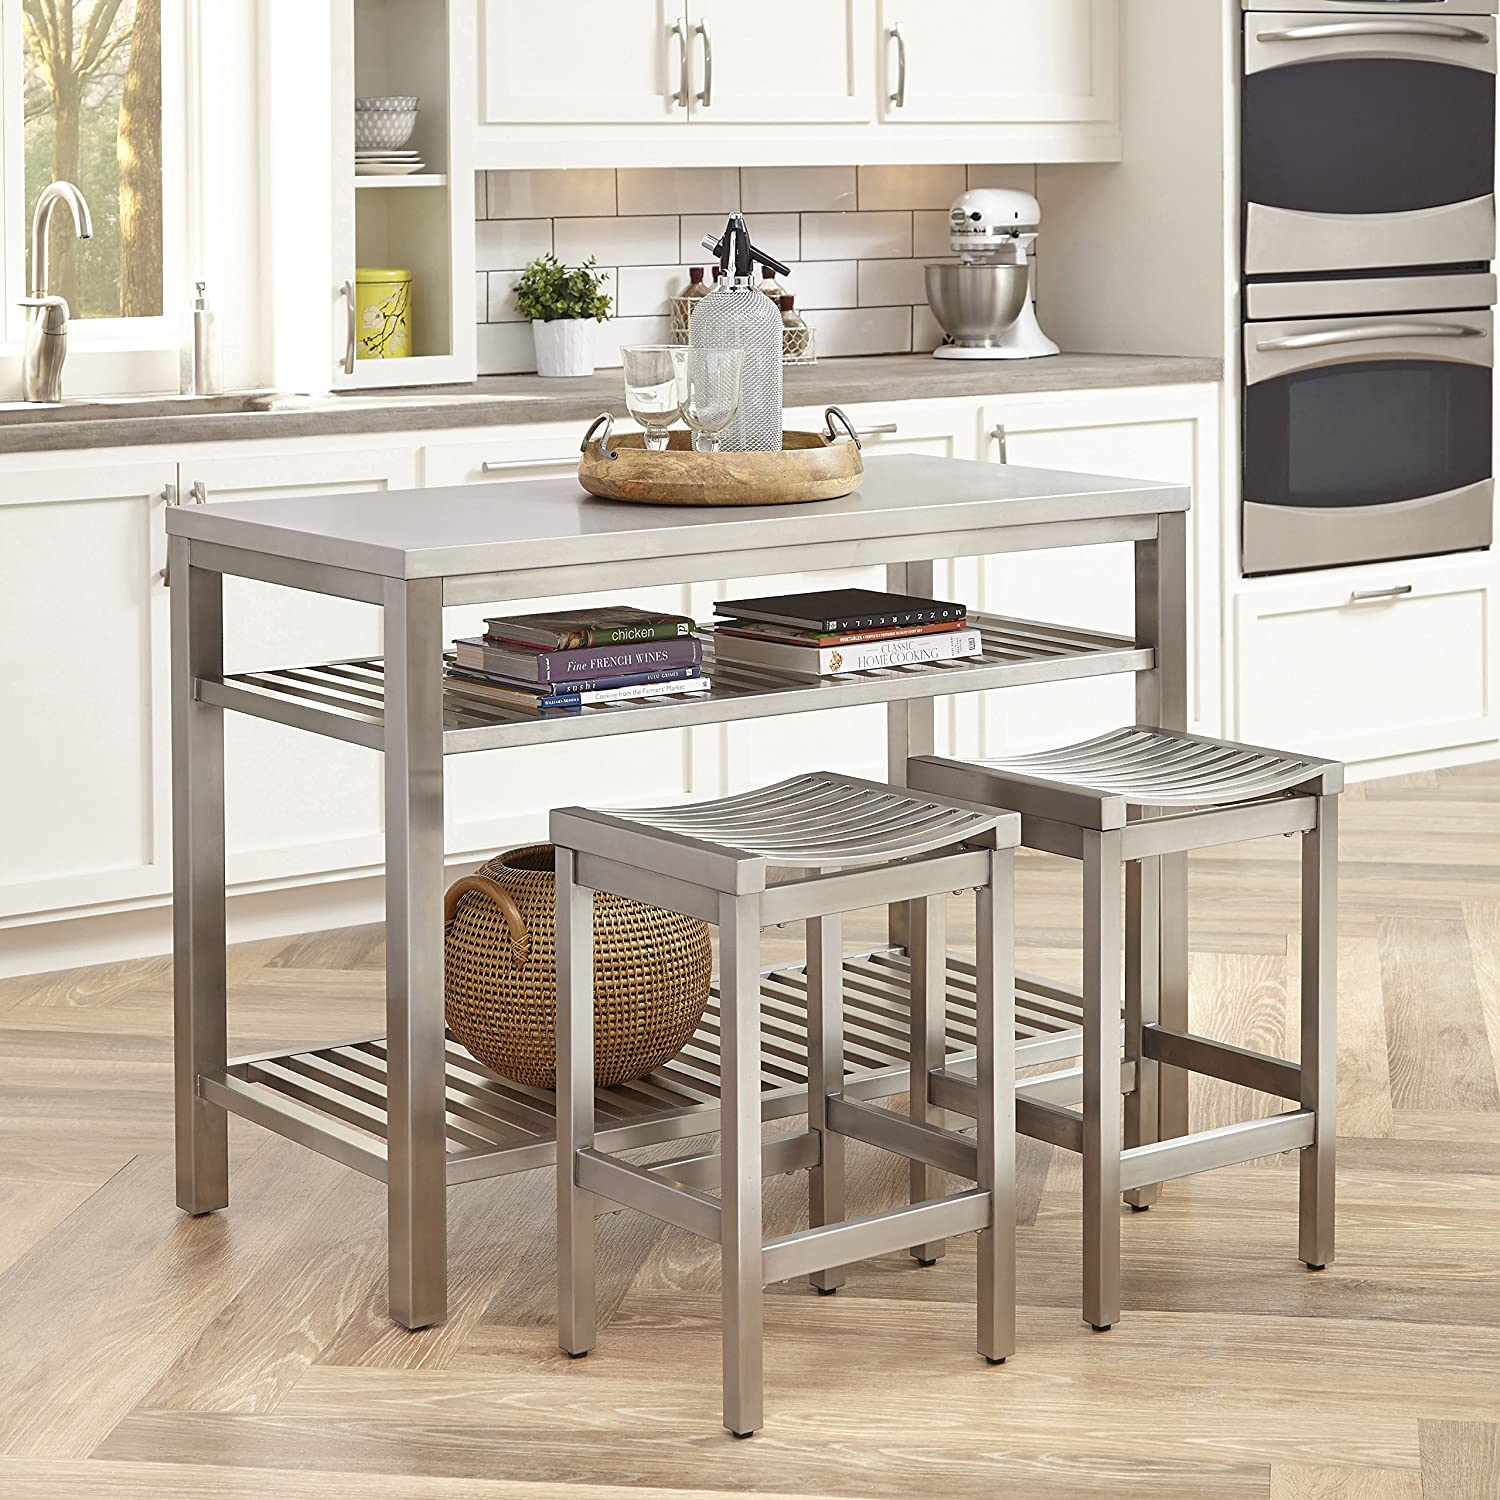 Amazon.com - Pittsburgh Stainless Steel Kitchen Island and ...